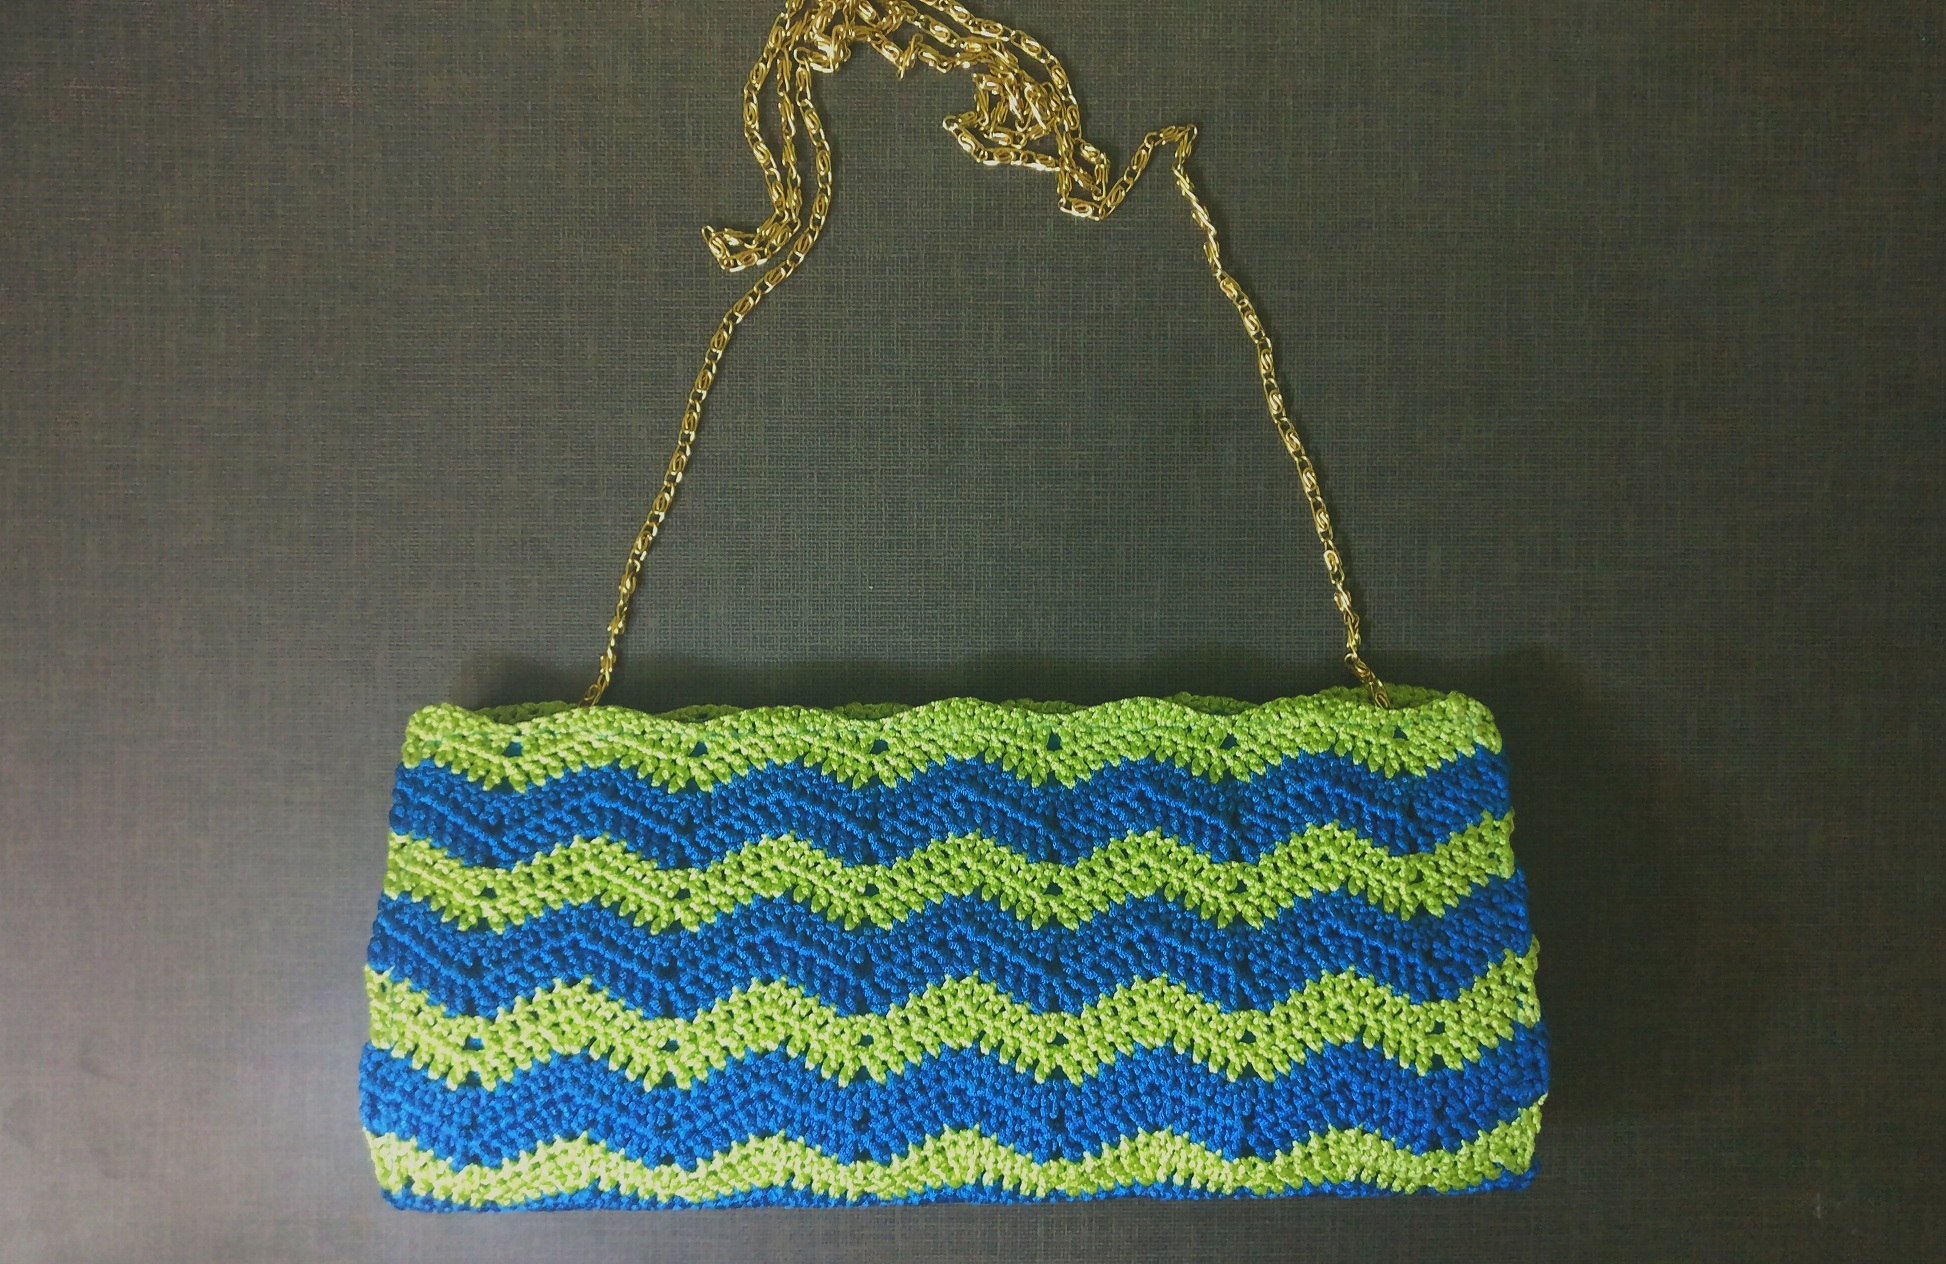 Cool Blue Crochet Clutch